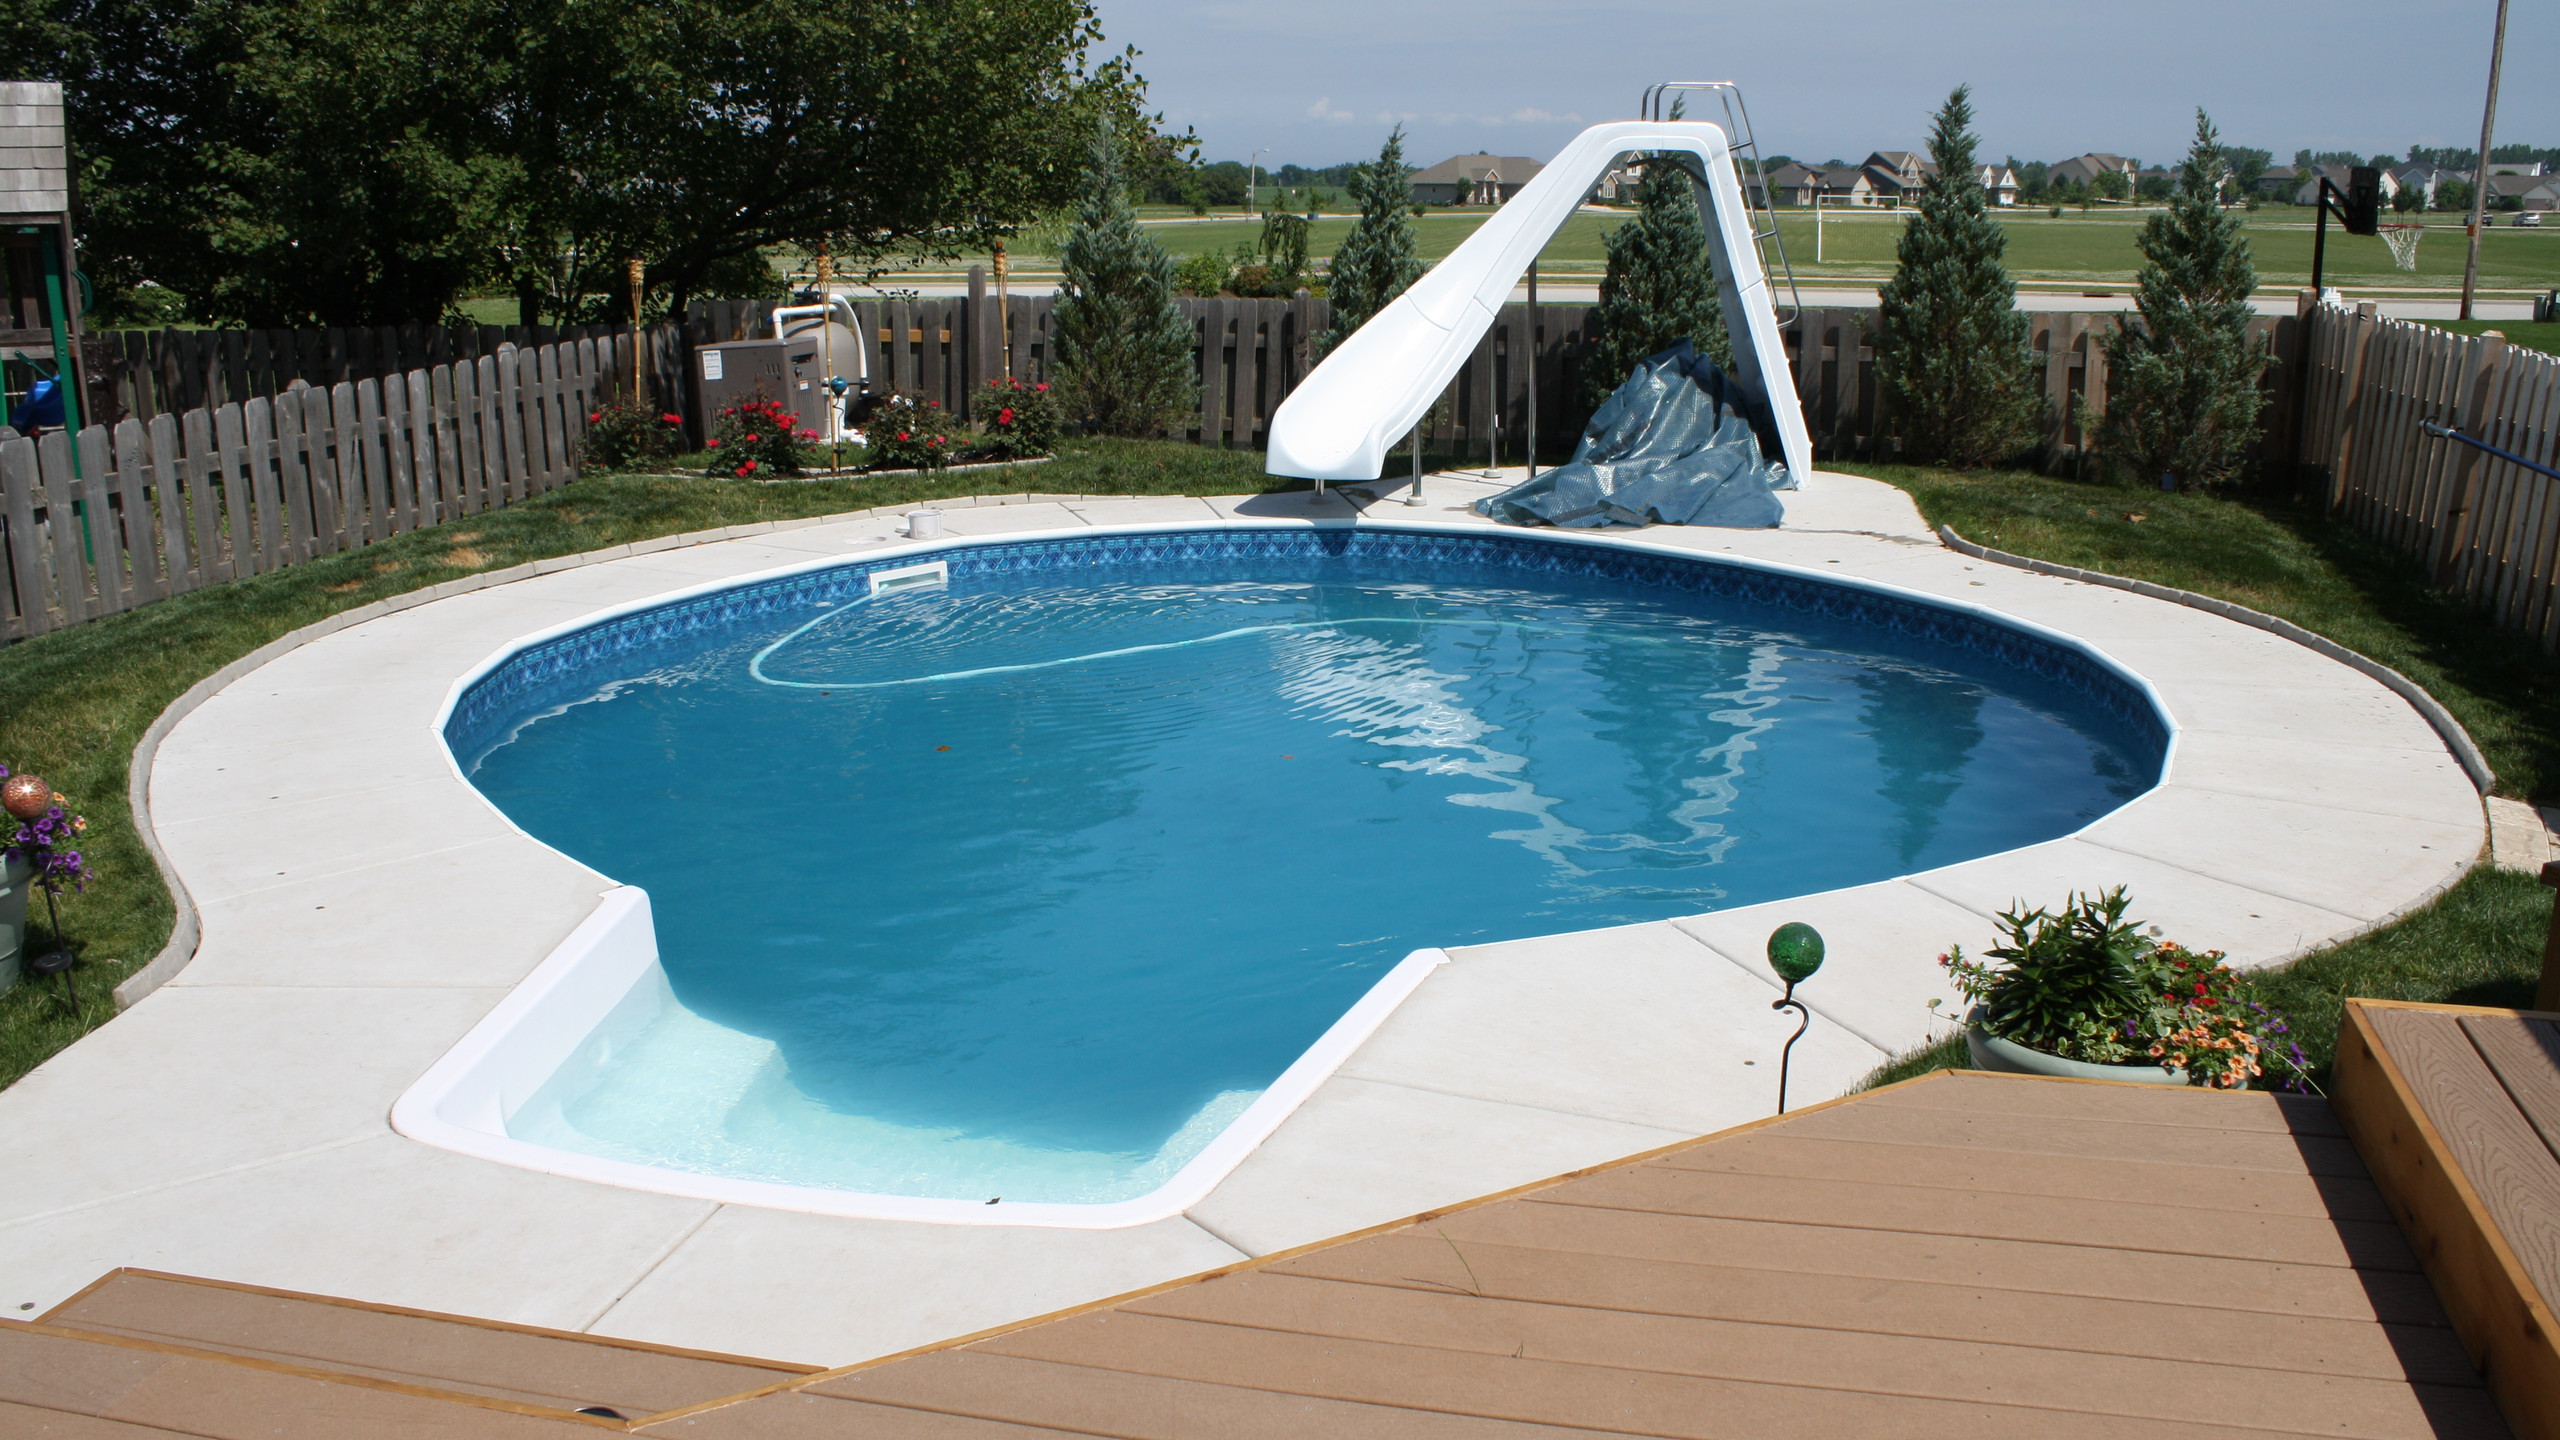 APSP Gold Award fro residential vinyl lined pool in Green Bay WI